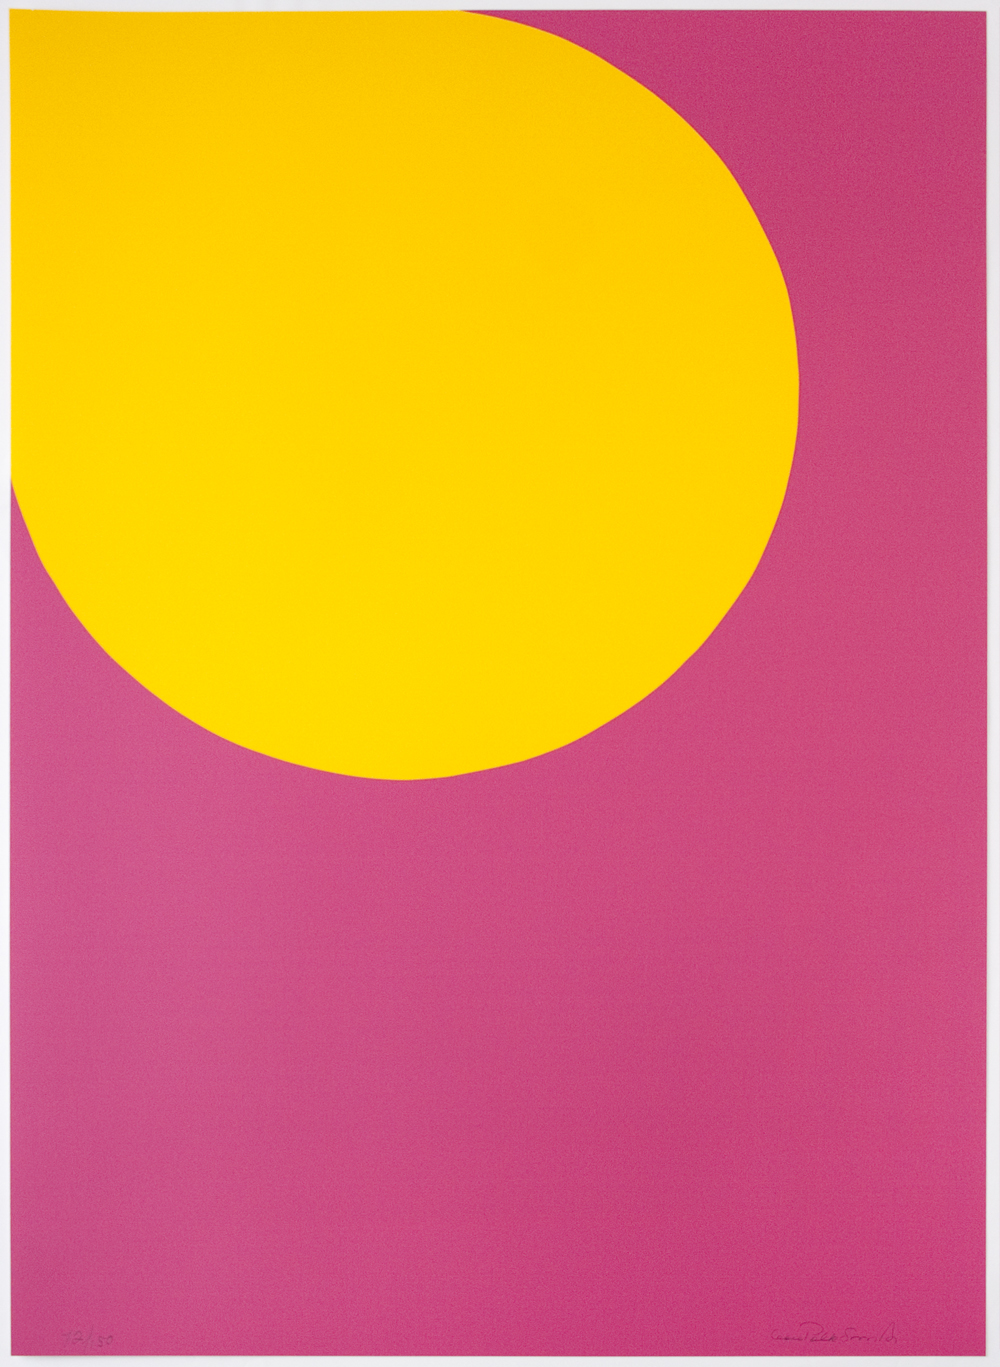 Leon Polk Smith (American, 1906-1996)  Color Forms (F) , 1974 Screenprint 33 x 23 1/4 inches